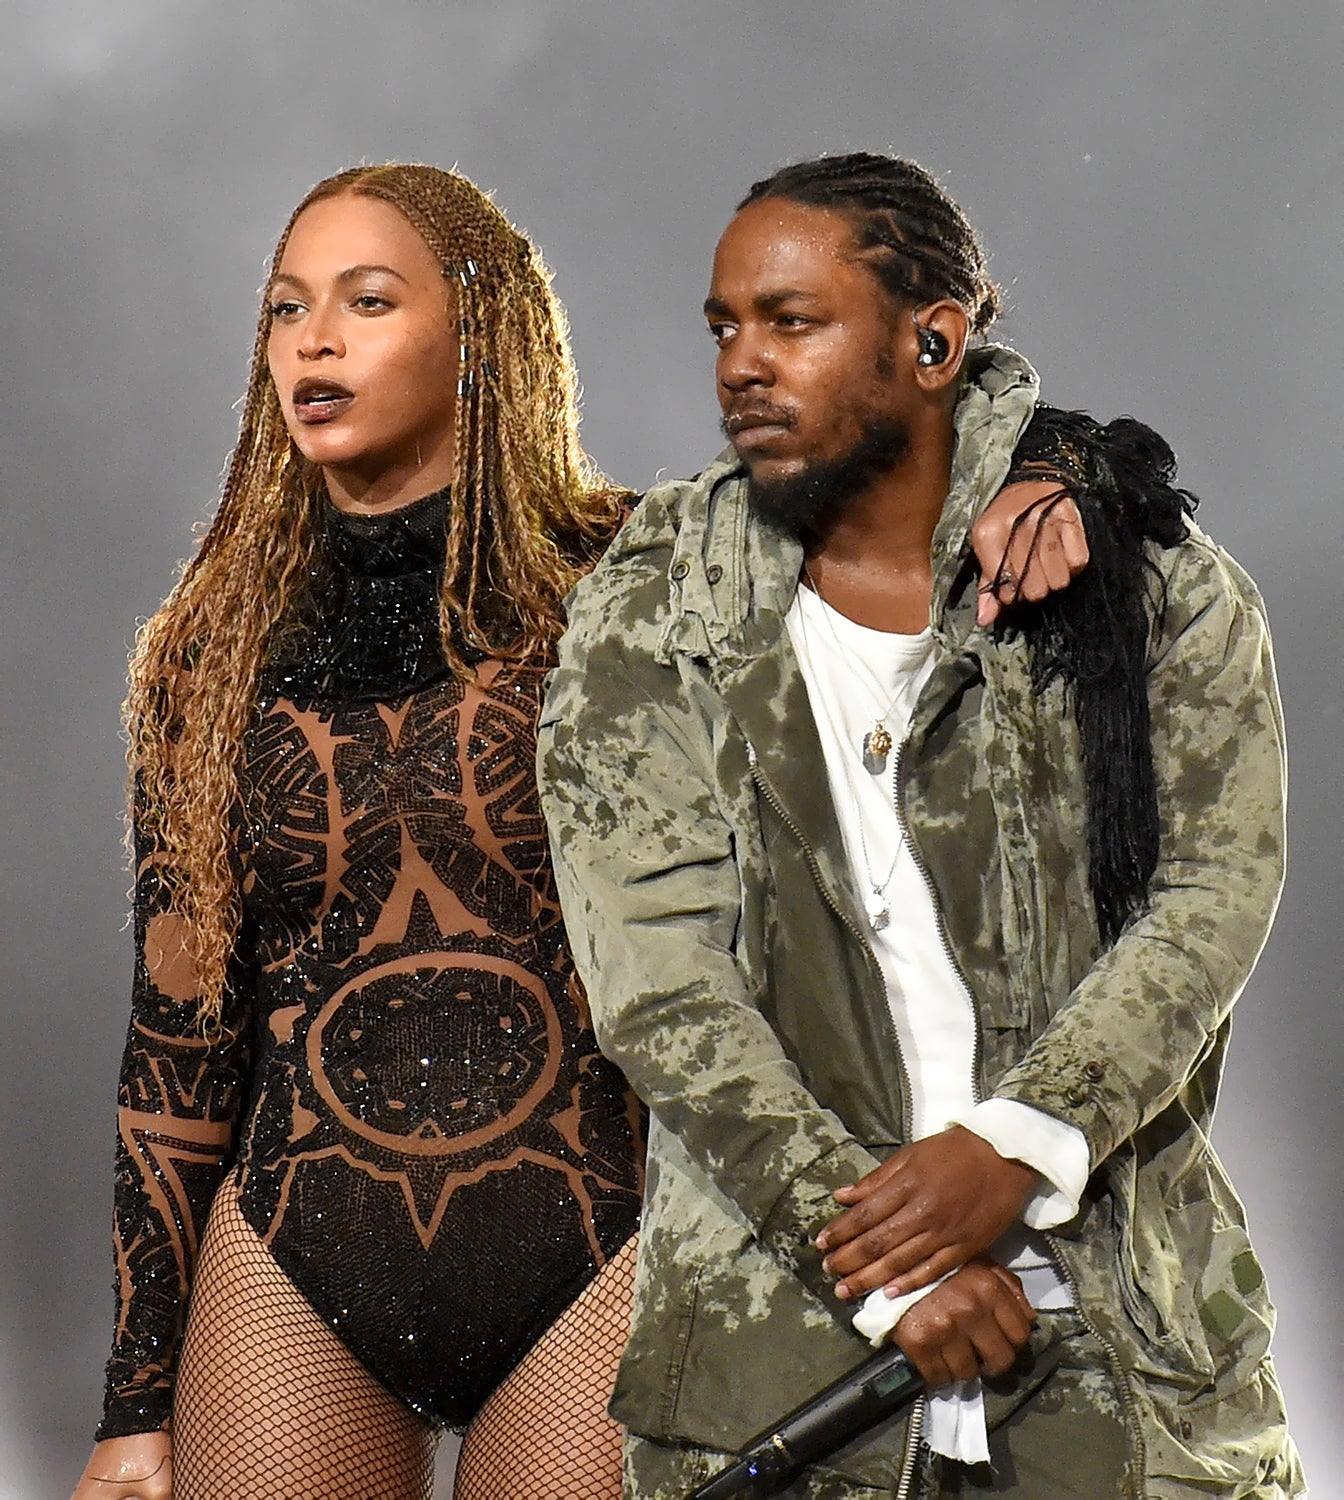 pics Beyonce, Solange, Kendrick Lamar and More to Take the Coachella 2019 Stage